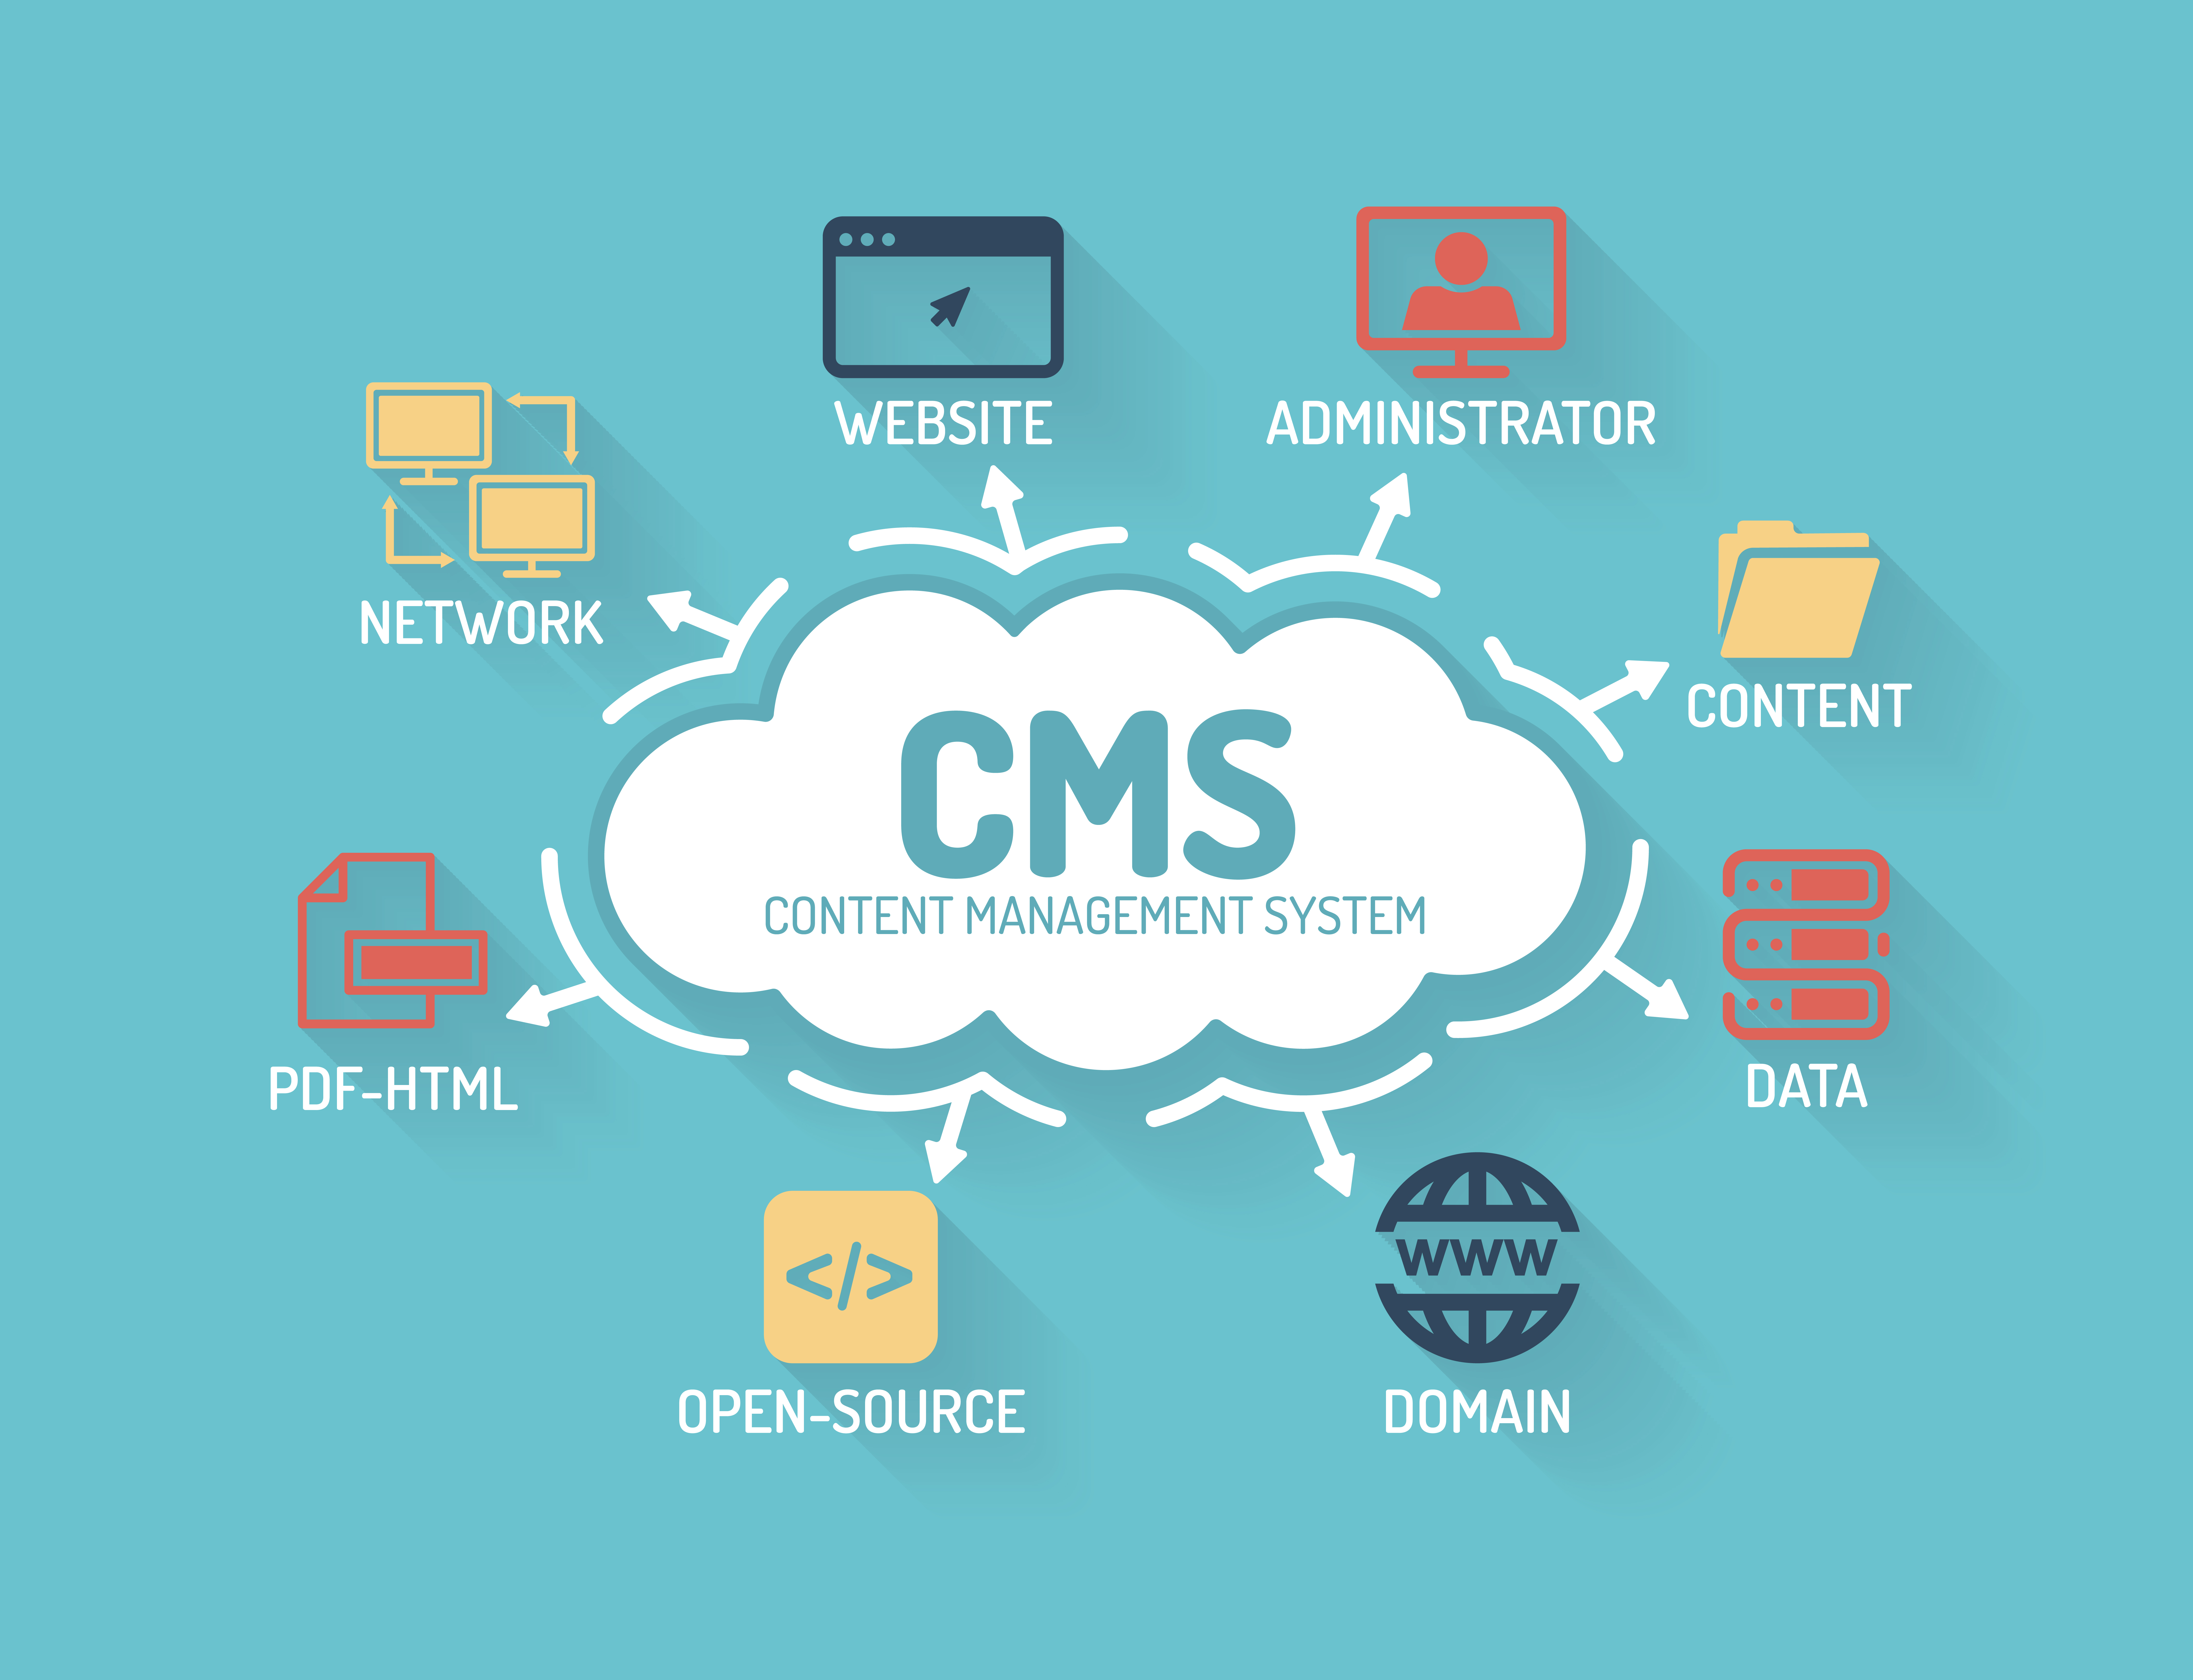 24535_CMS_Content_Management_System_-_Chart_with_keywords_and_icons_-_Flat_Design[1]